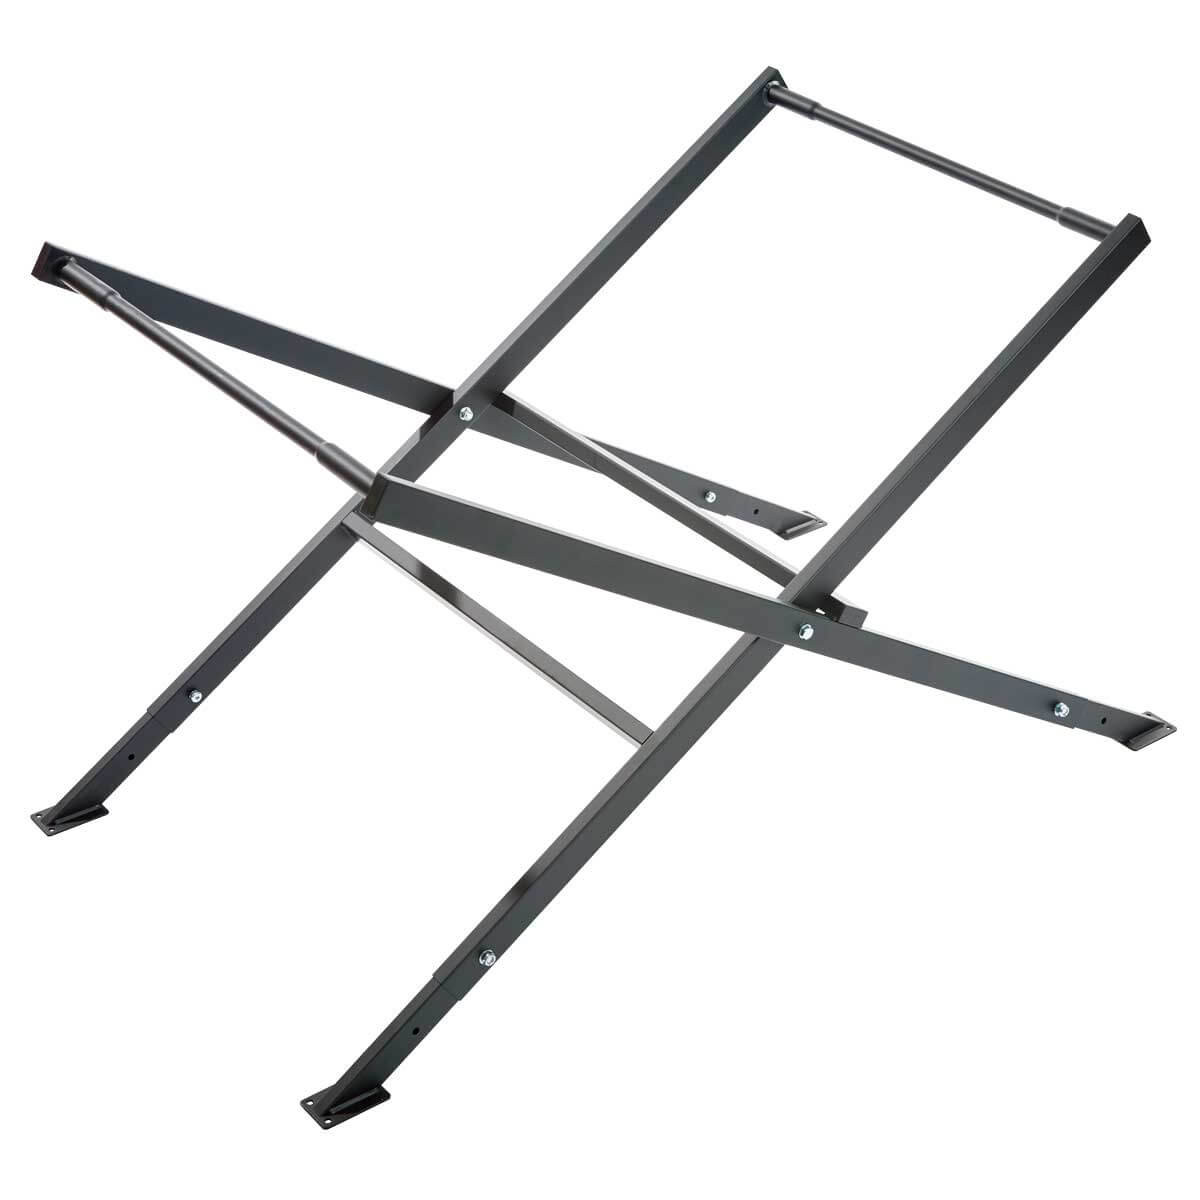 Lackmond Beast Wet Tile saw stand